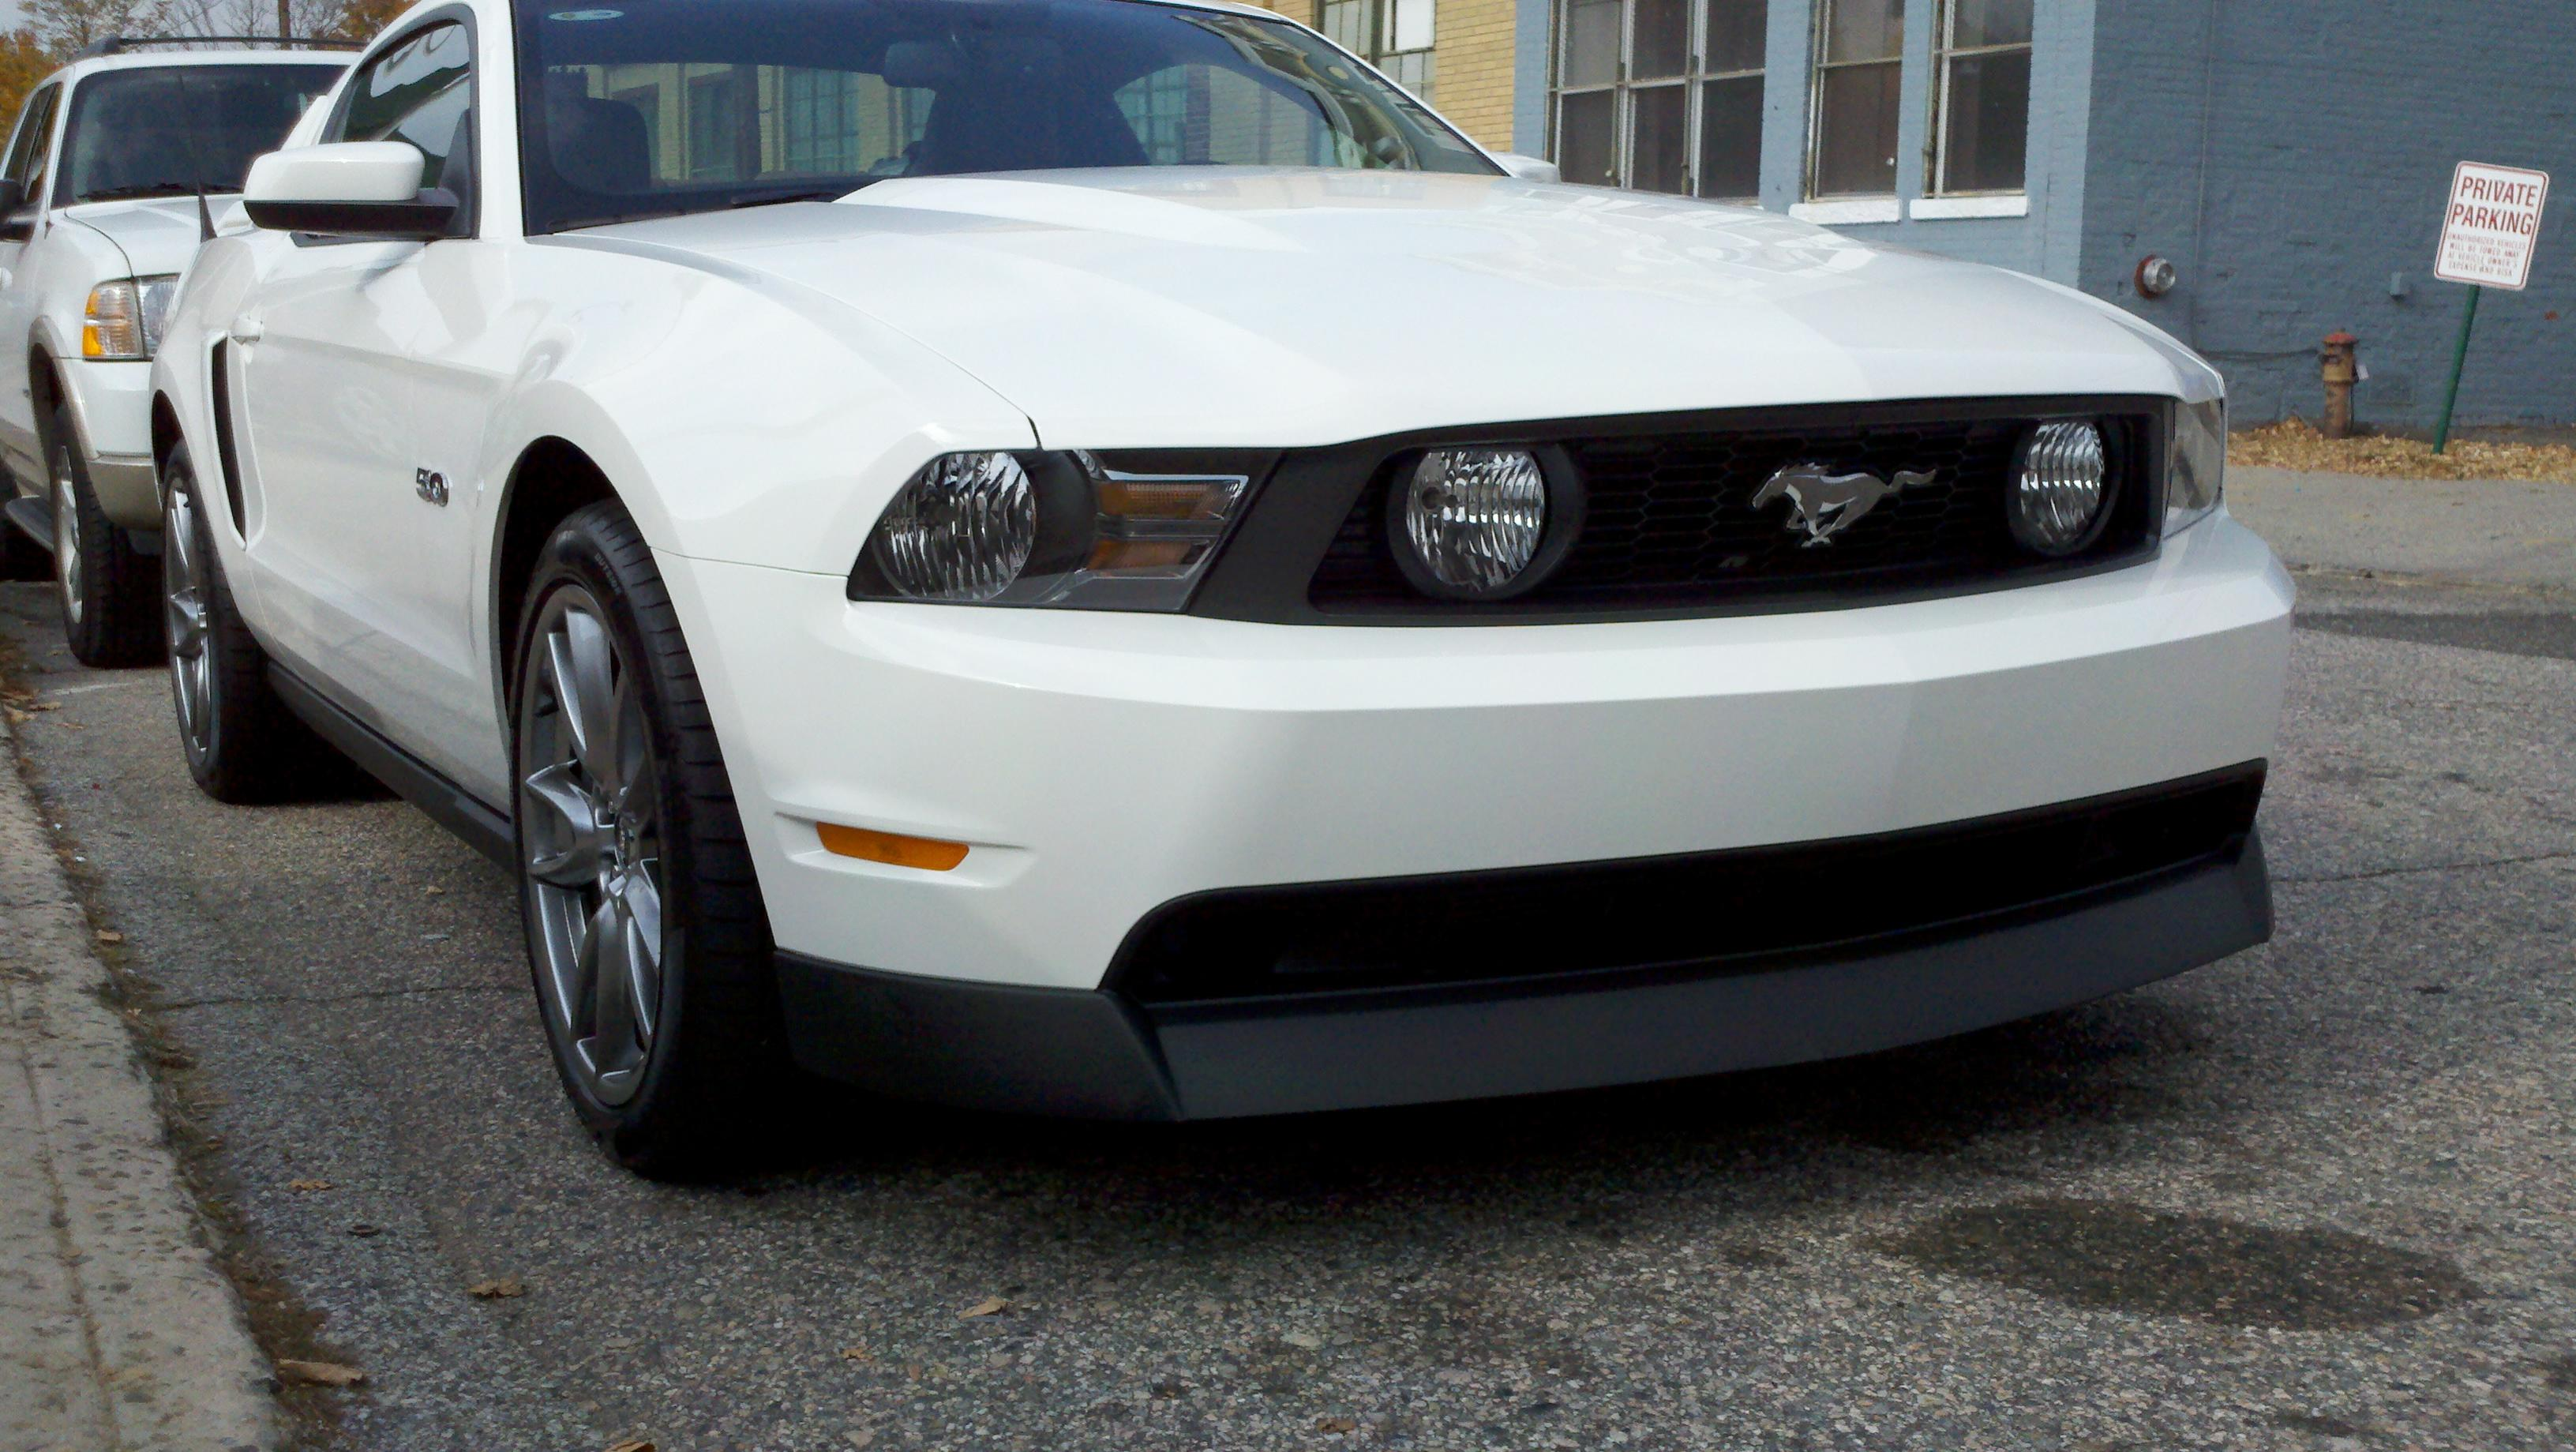 Click image for larger version  Name:stang.jpg Views:59 Size:617.1 KB ID:197402